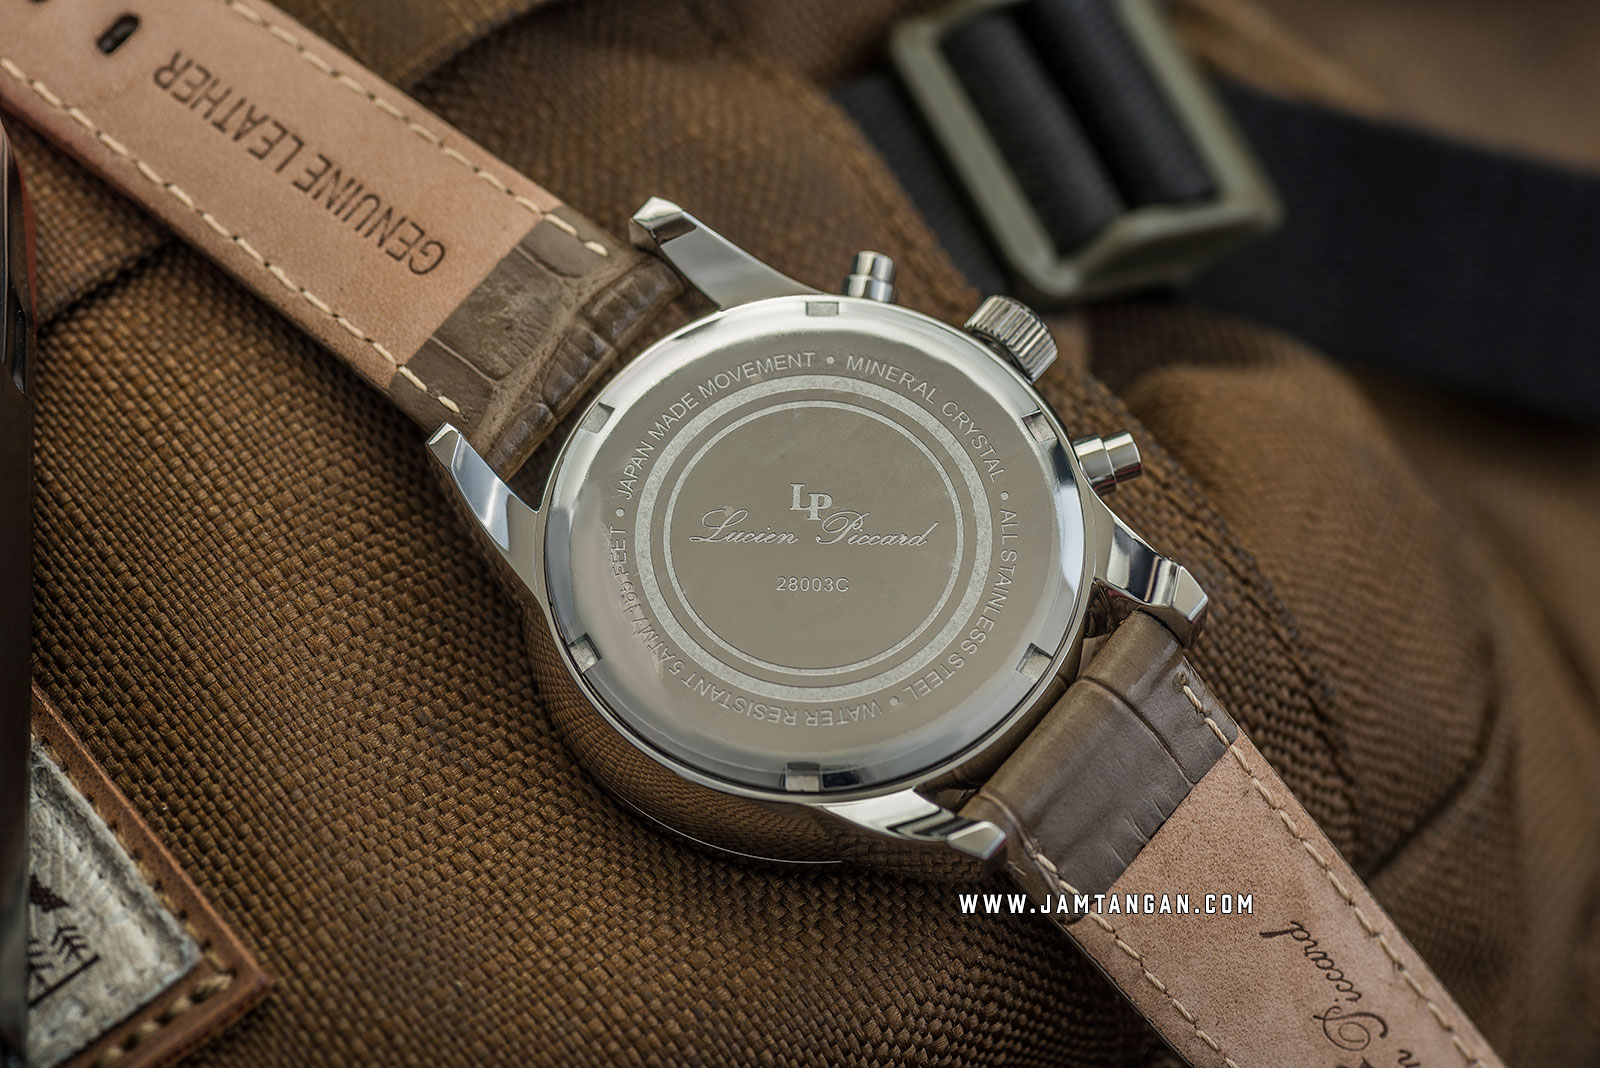 Lucien Piccard Clark LP-28003C-020-BRW Chronograph Biege Dial Brown Leather Strap Machtwatch